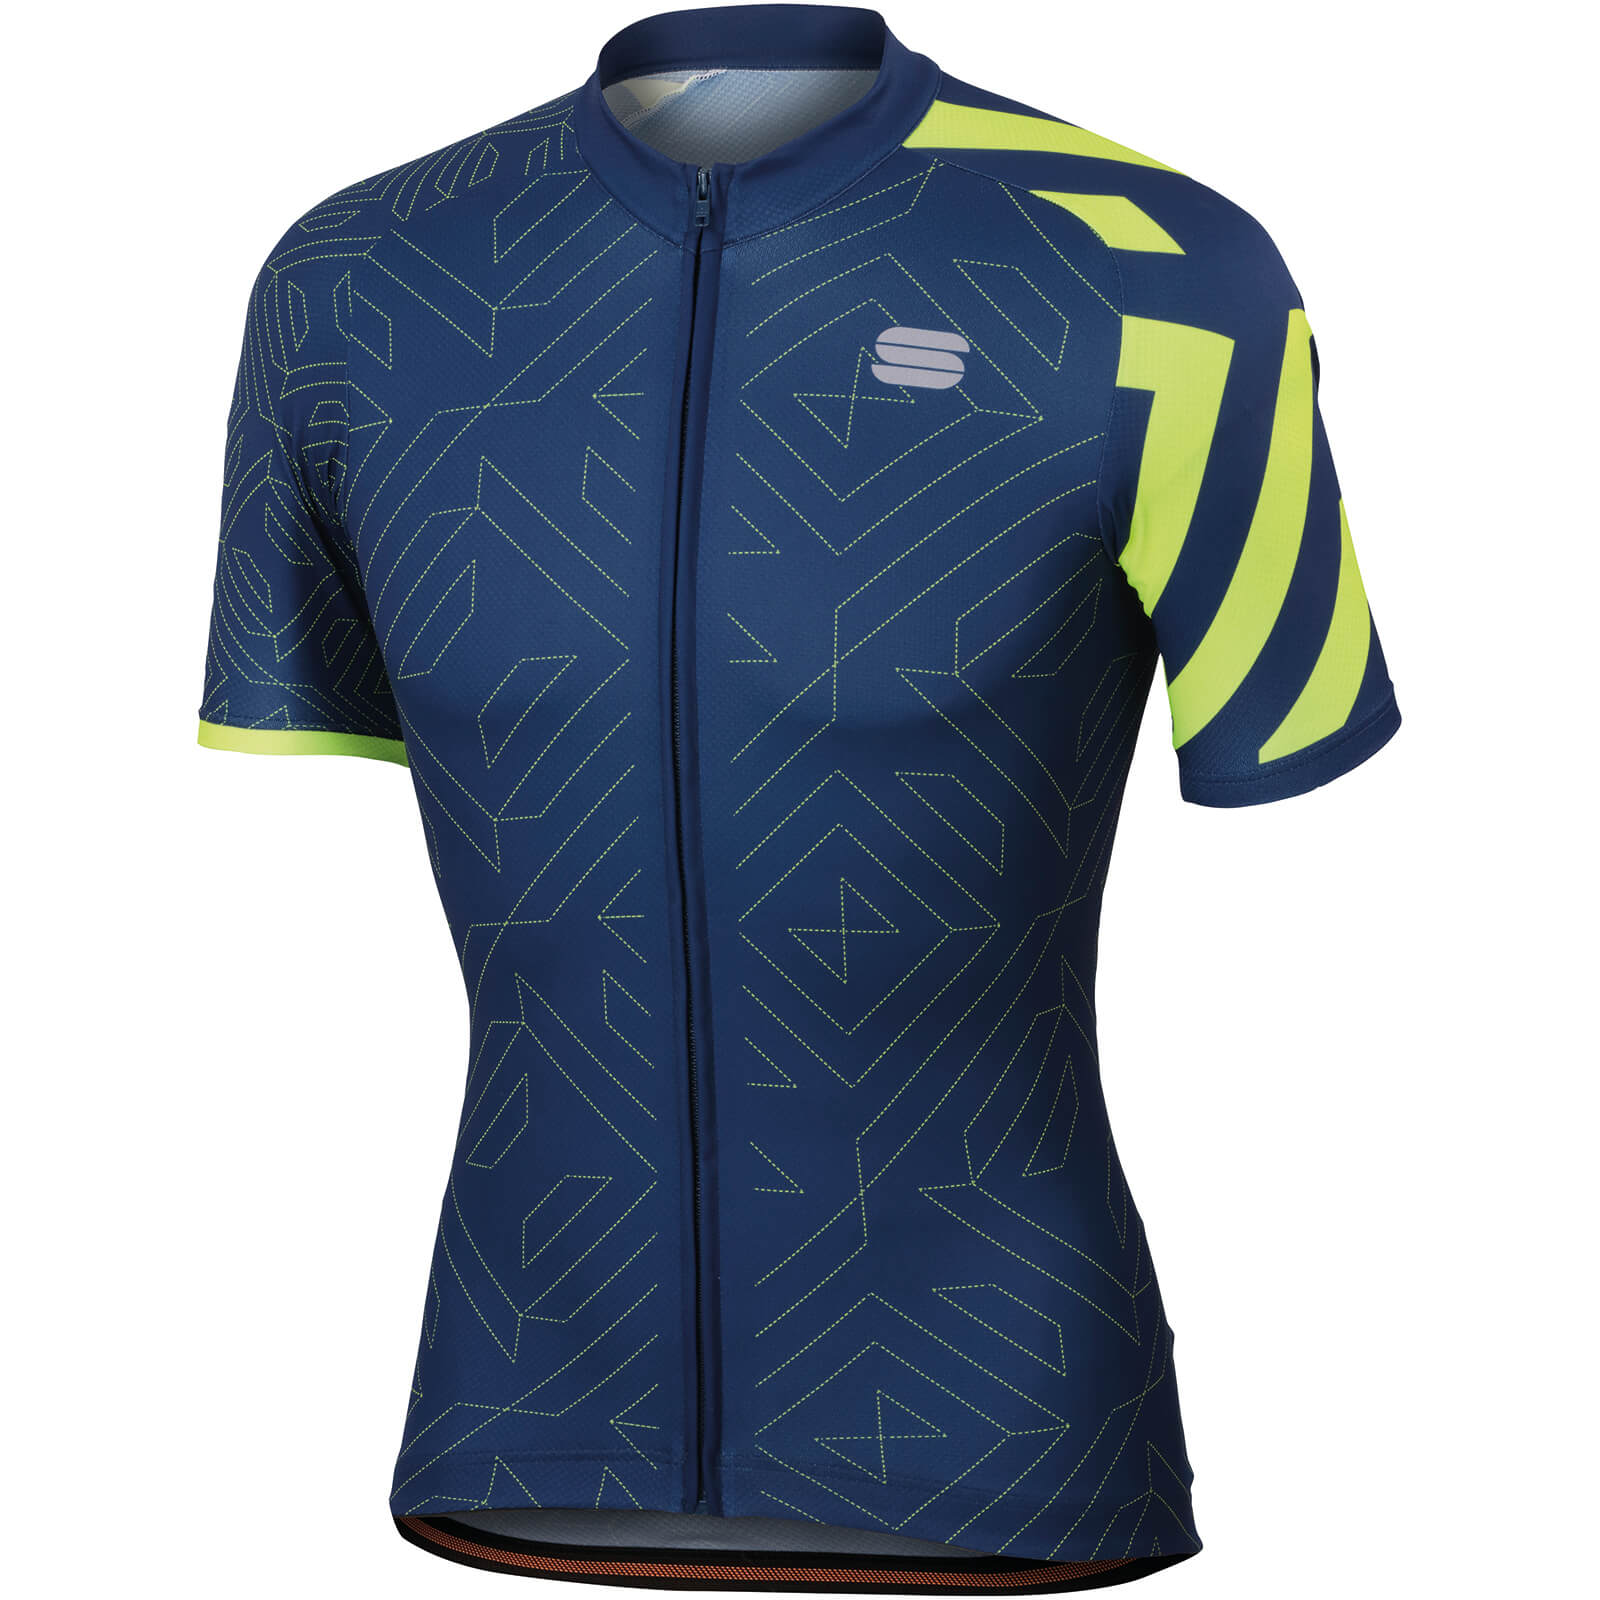 Sportful Prism Jersey - Twilight Blue/Yellow Fluo